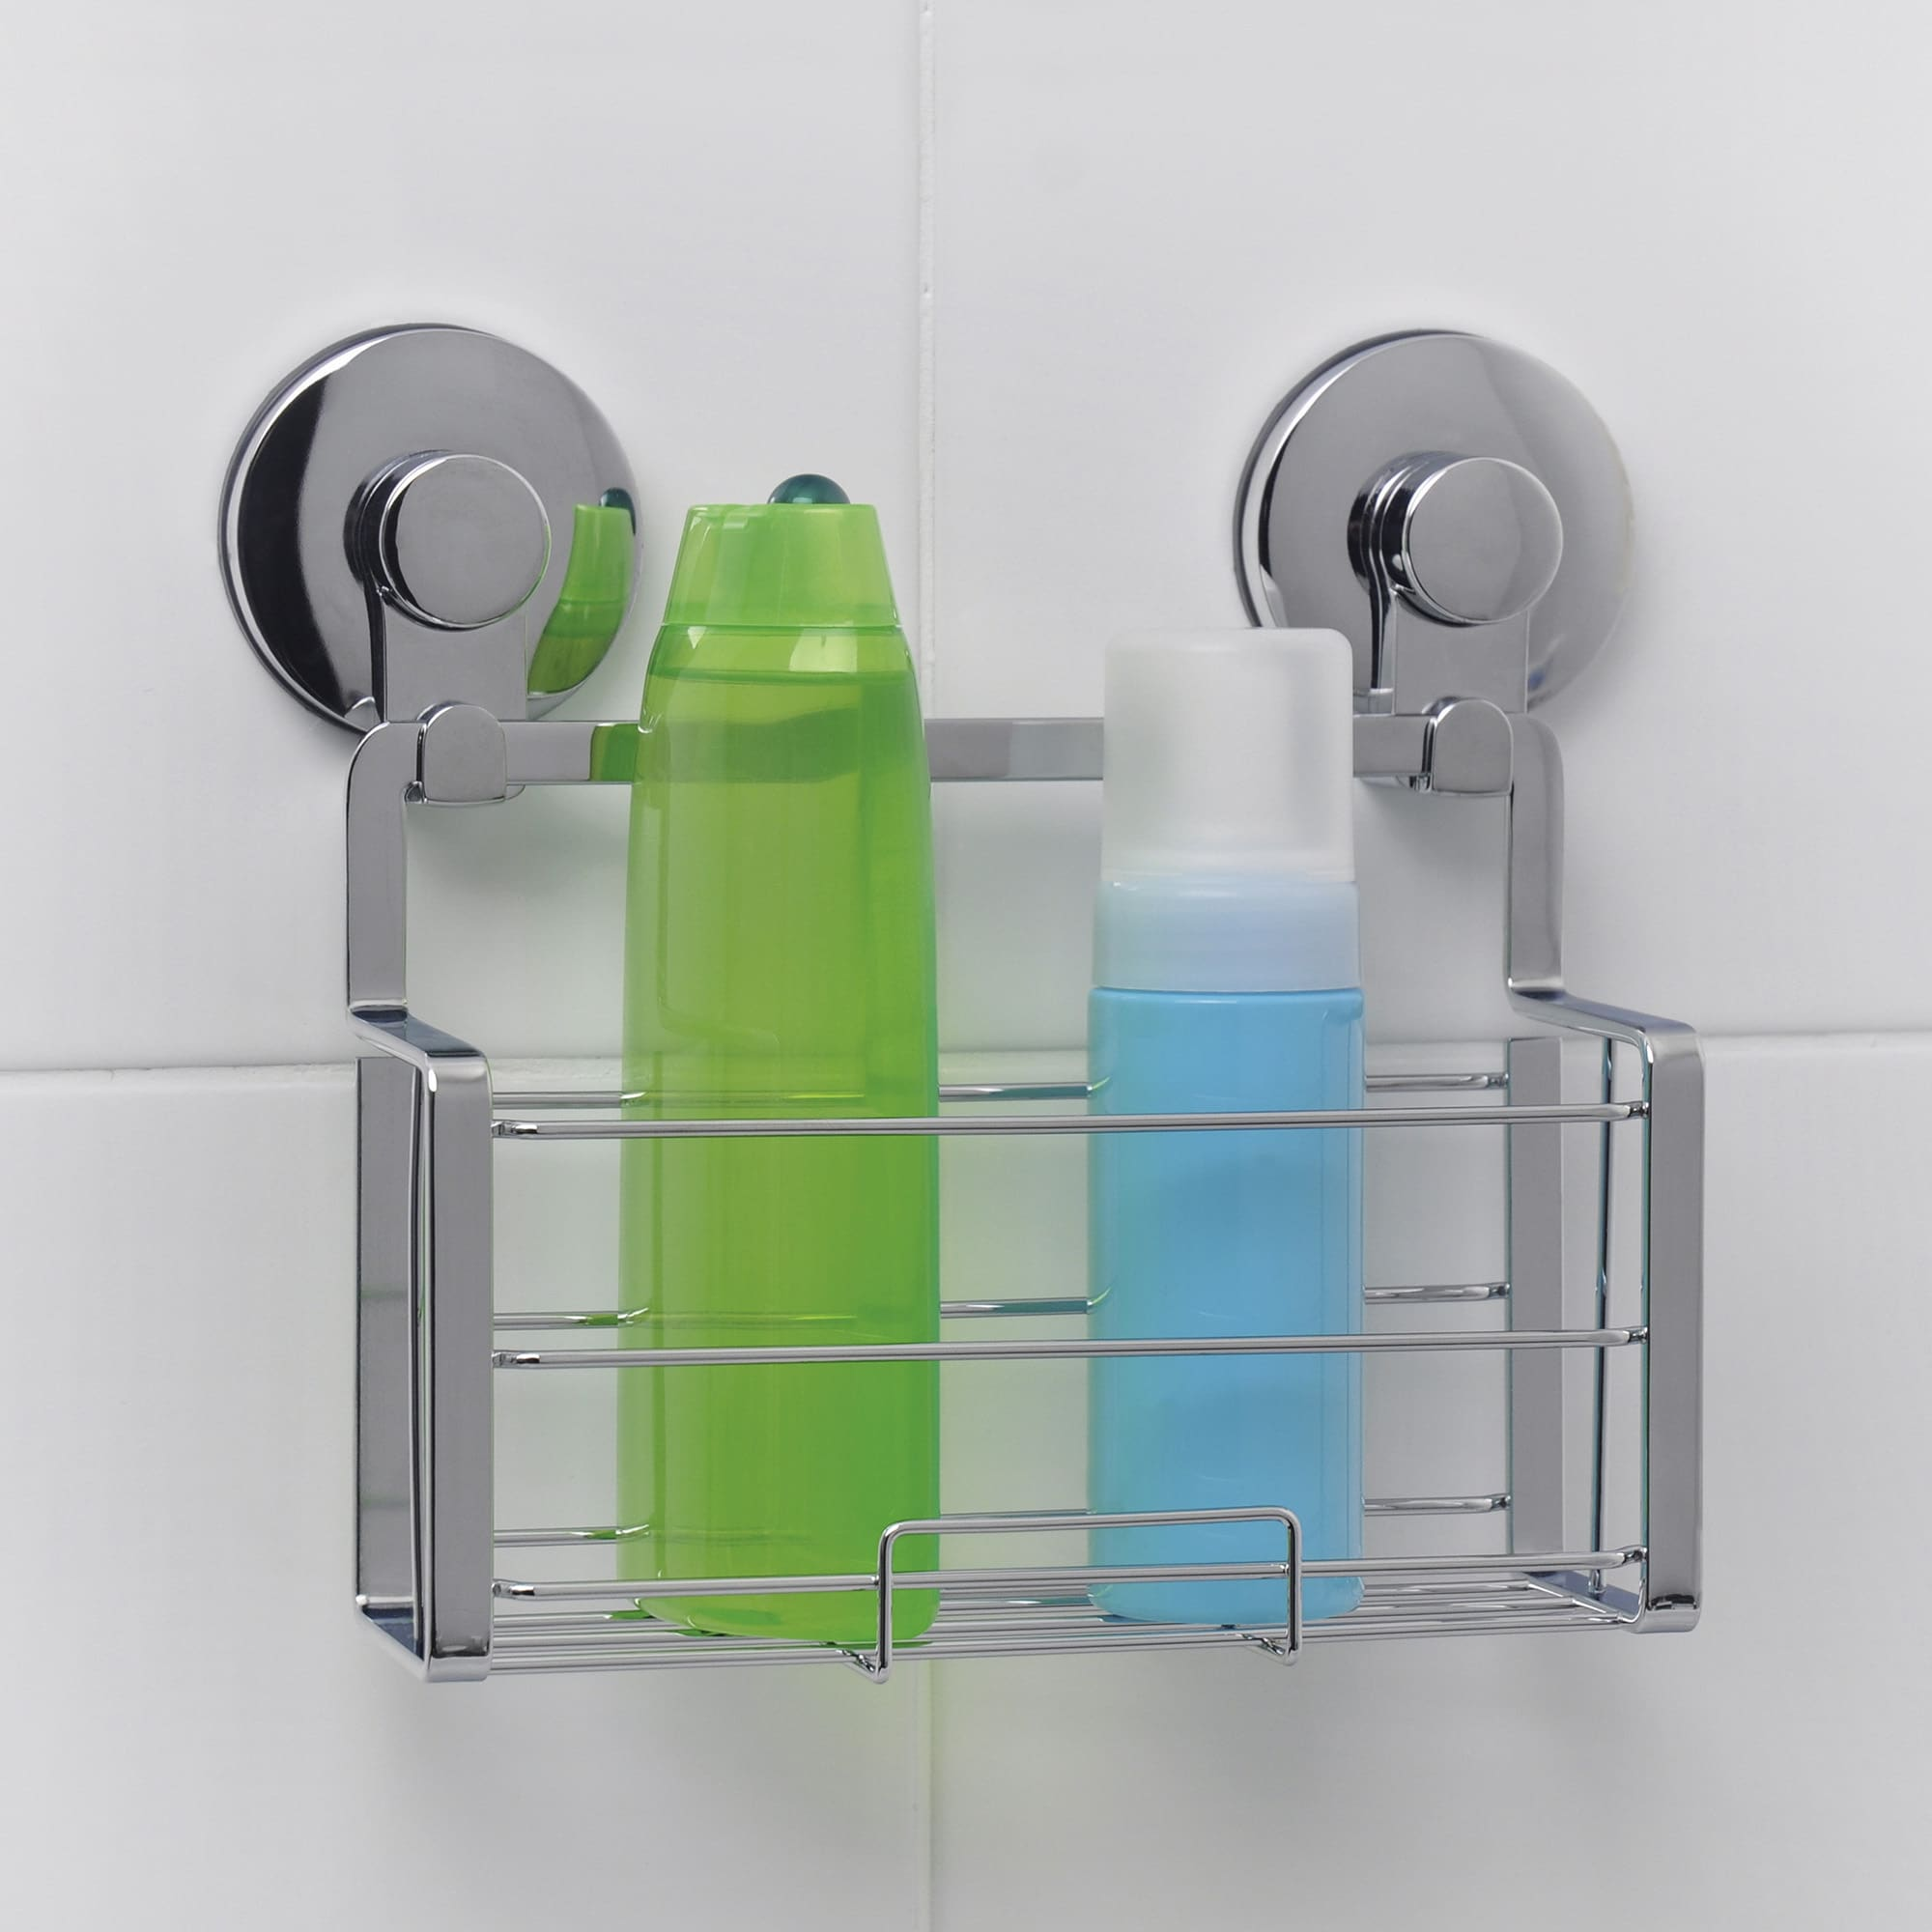 Everloc Solutions Stainless Steel Suction Cup Shower Caddy N A